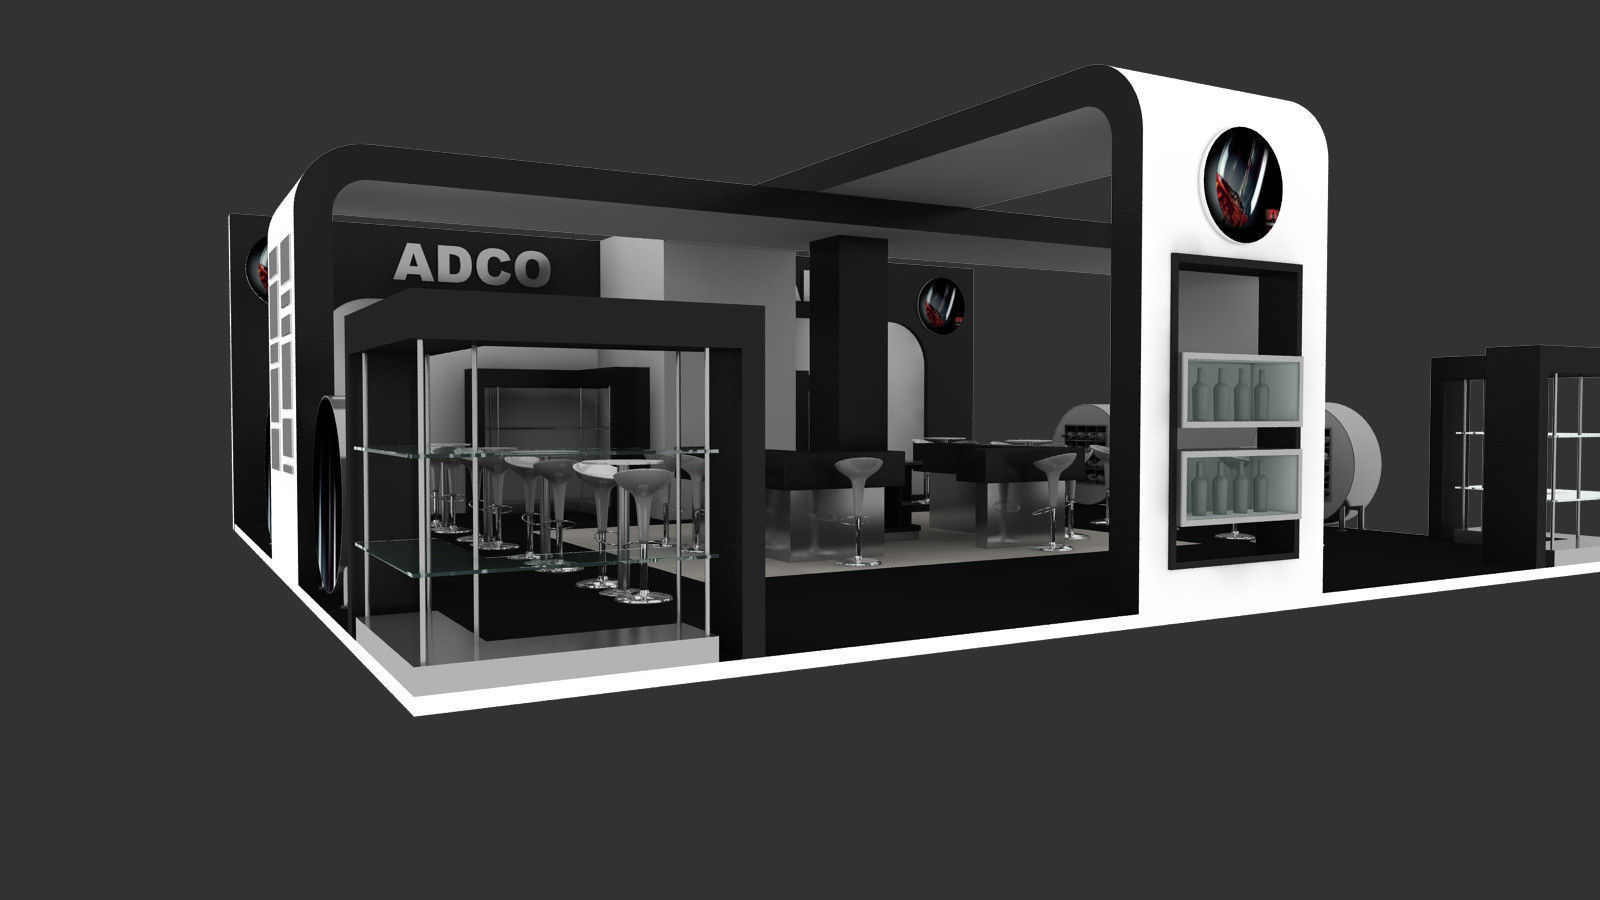 D Model Exhibition Free : Adco exhibition stand design d model animated